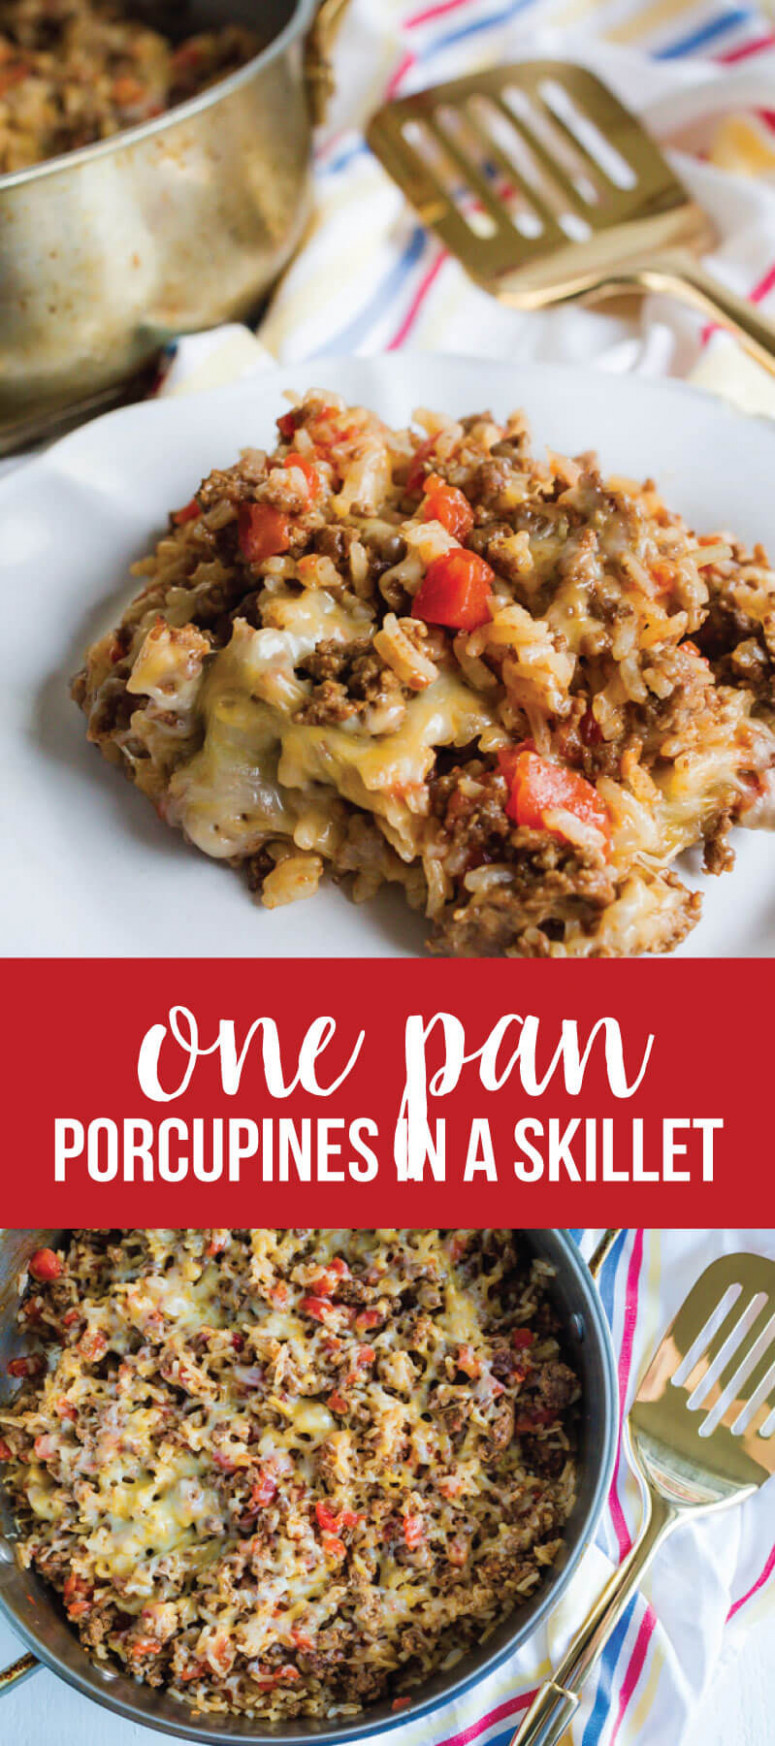 Porcupines in a Skillet - recipes dinner ideas